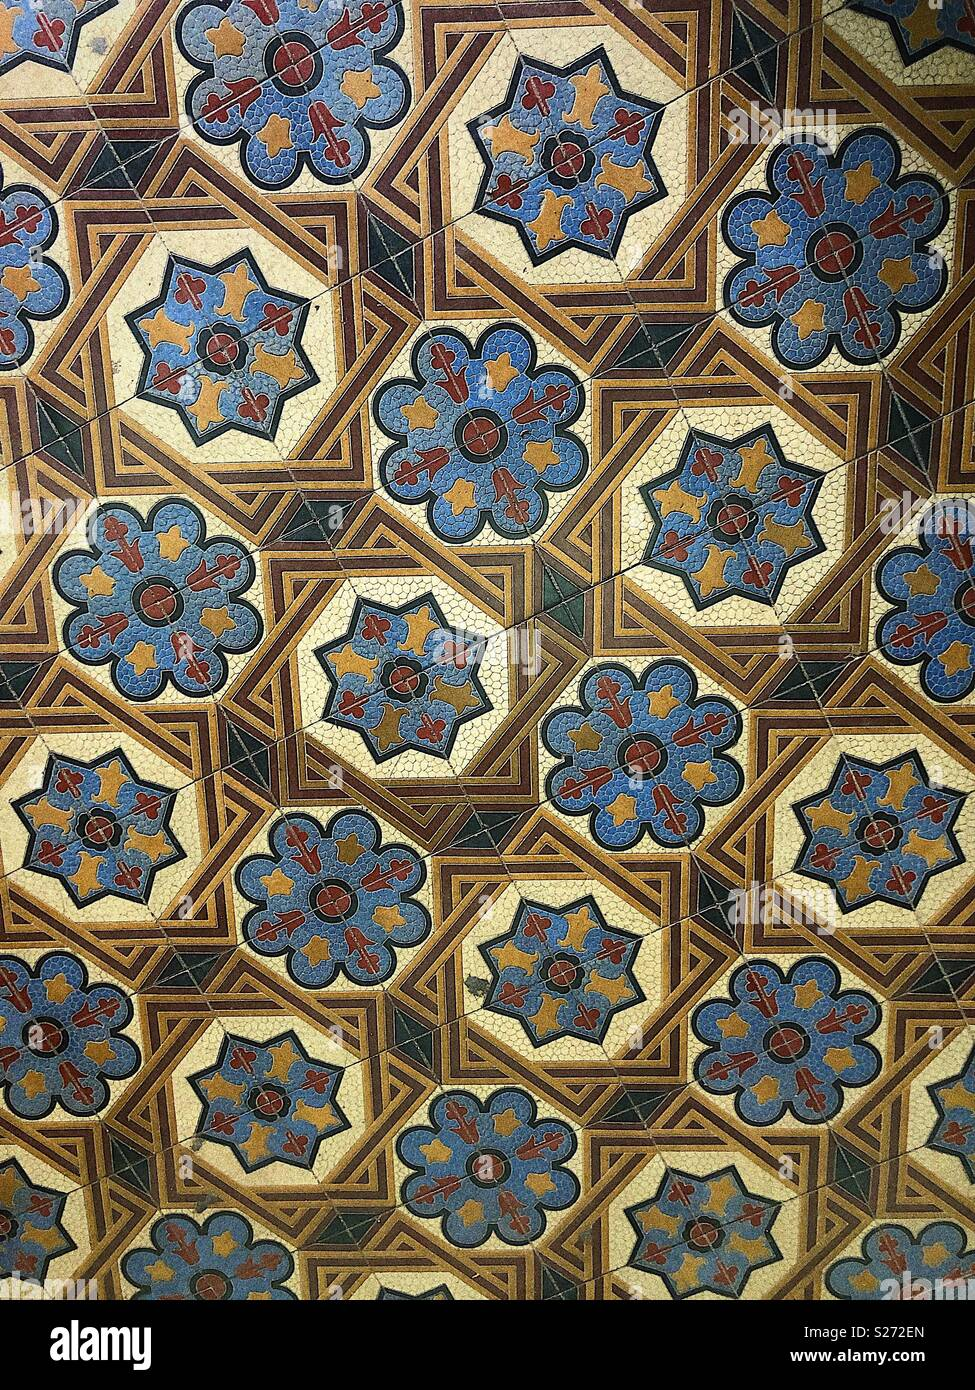 Tiled floor with decorative pattern of blues and creams - Stock Image